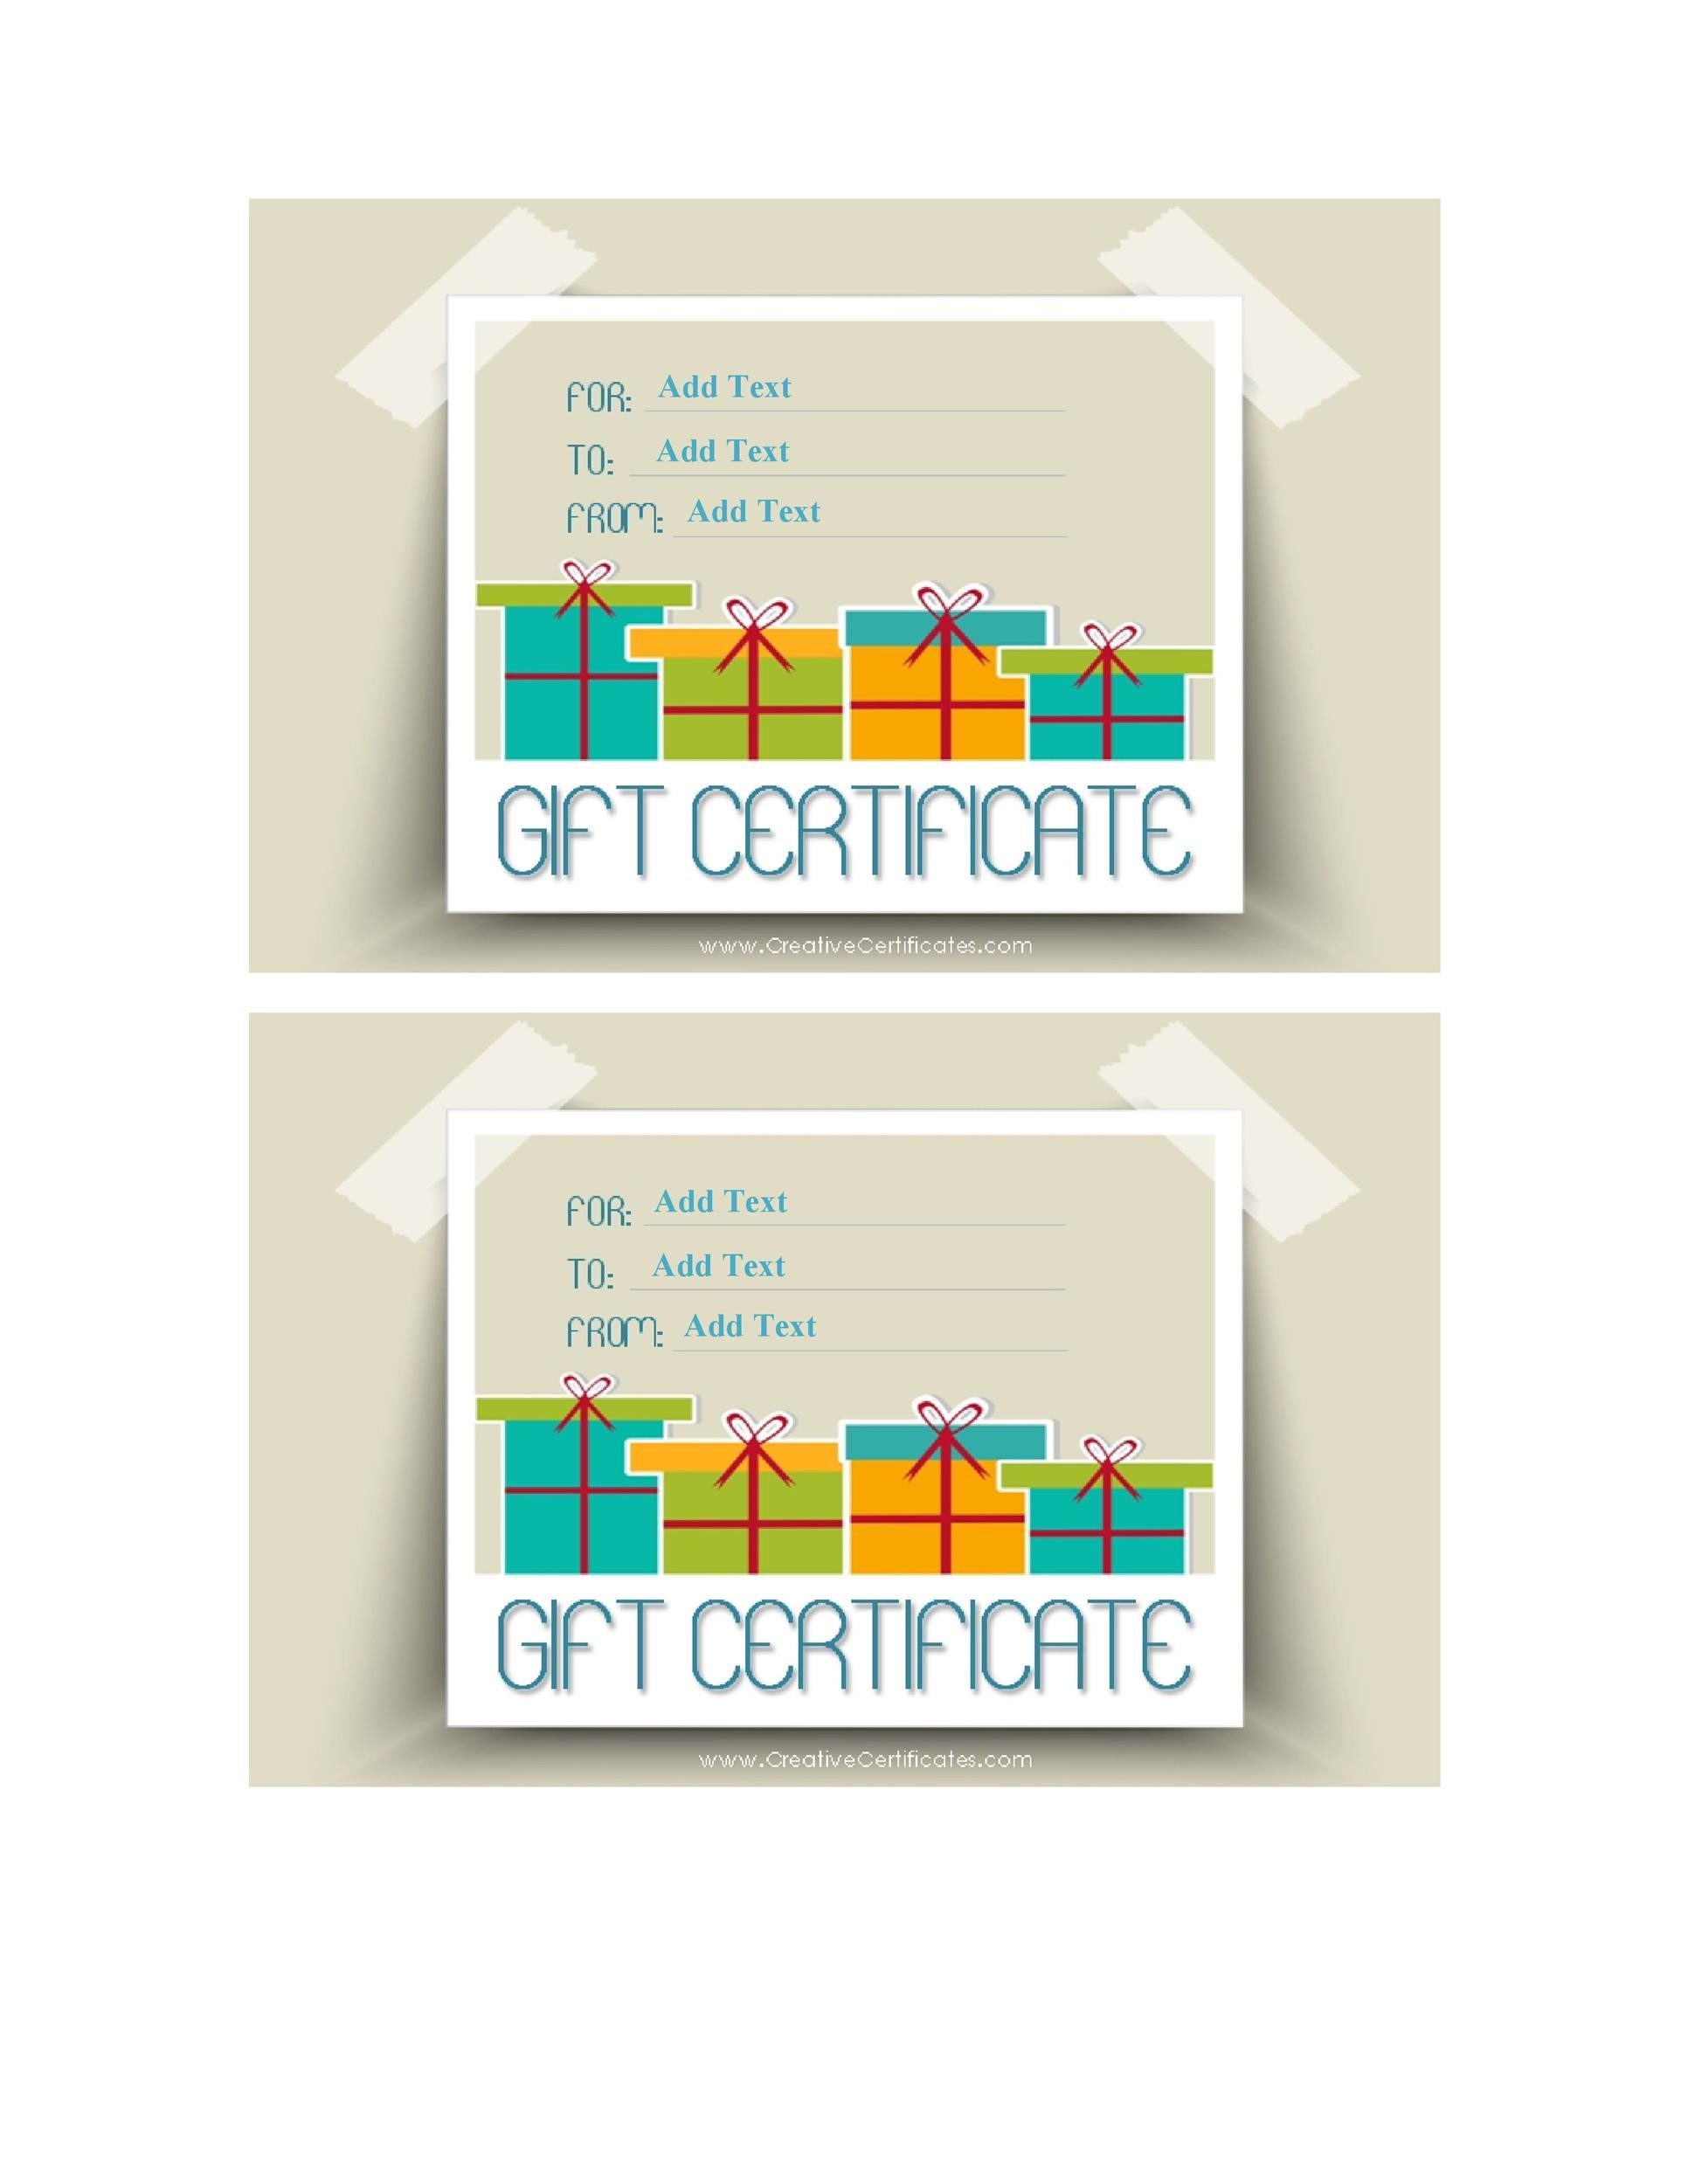 templates for gift certificates free downloads - 40 free gift certificate templates template lab